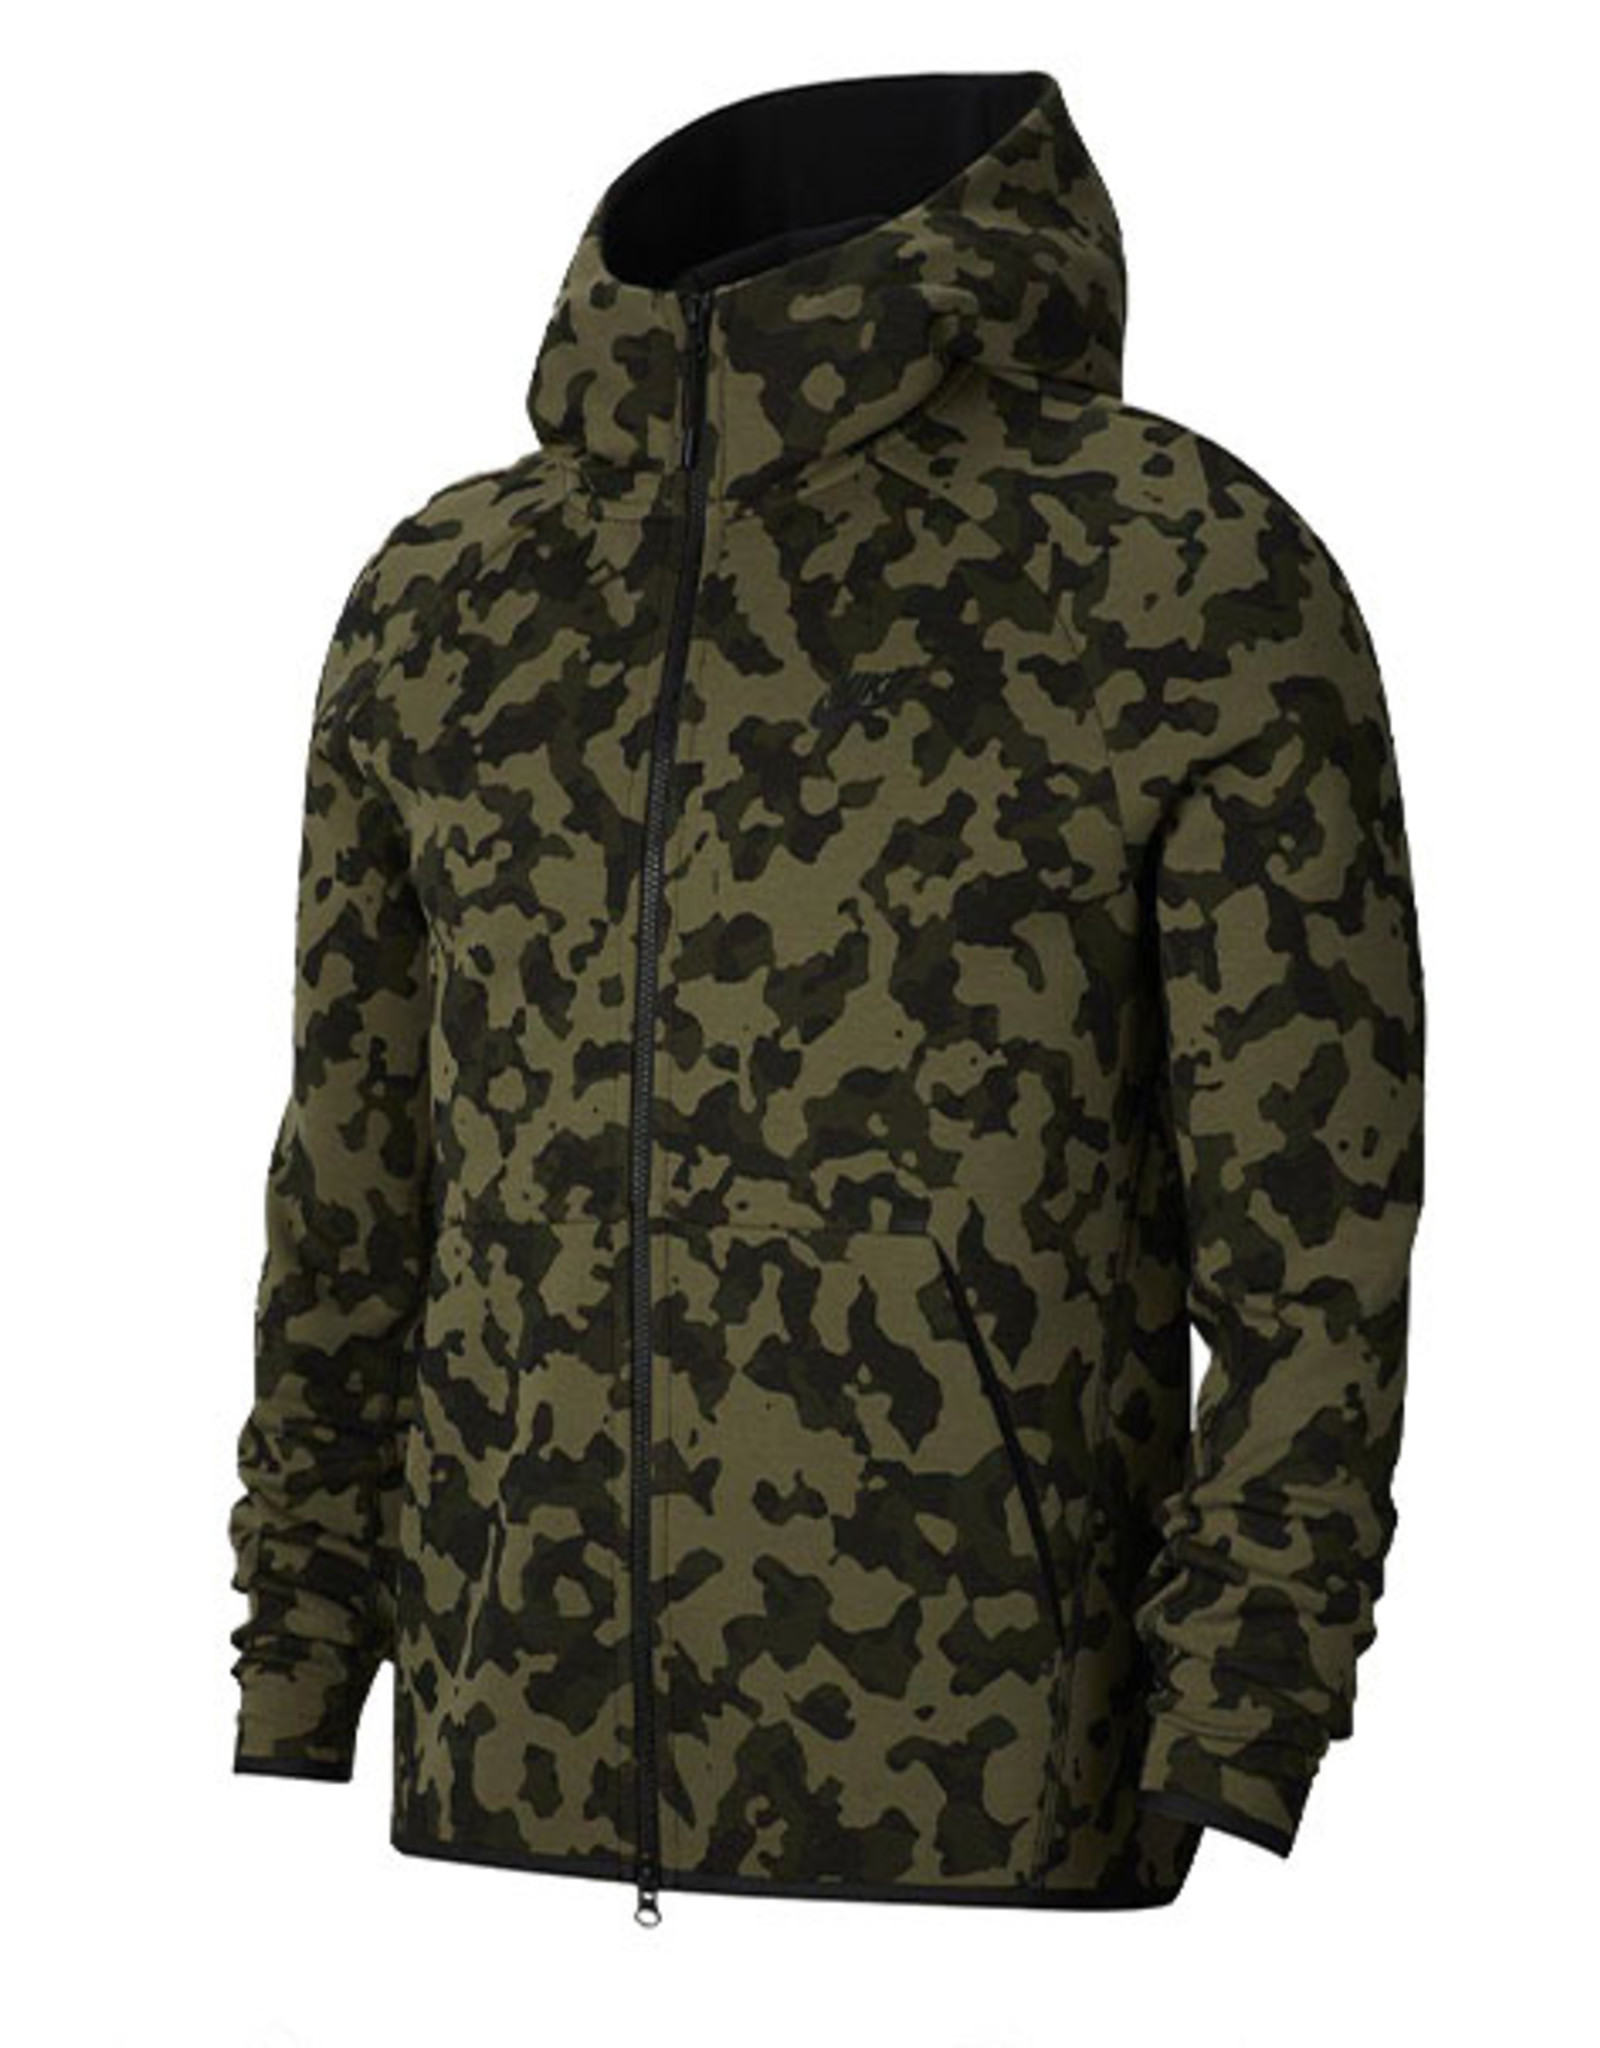 NIKE MEN'S SPORTSWEAR TECH FLEECE FULL-ZIP HOODIE - CAMO